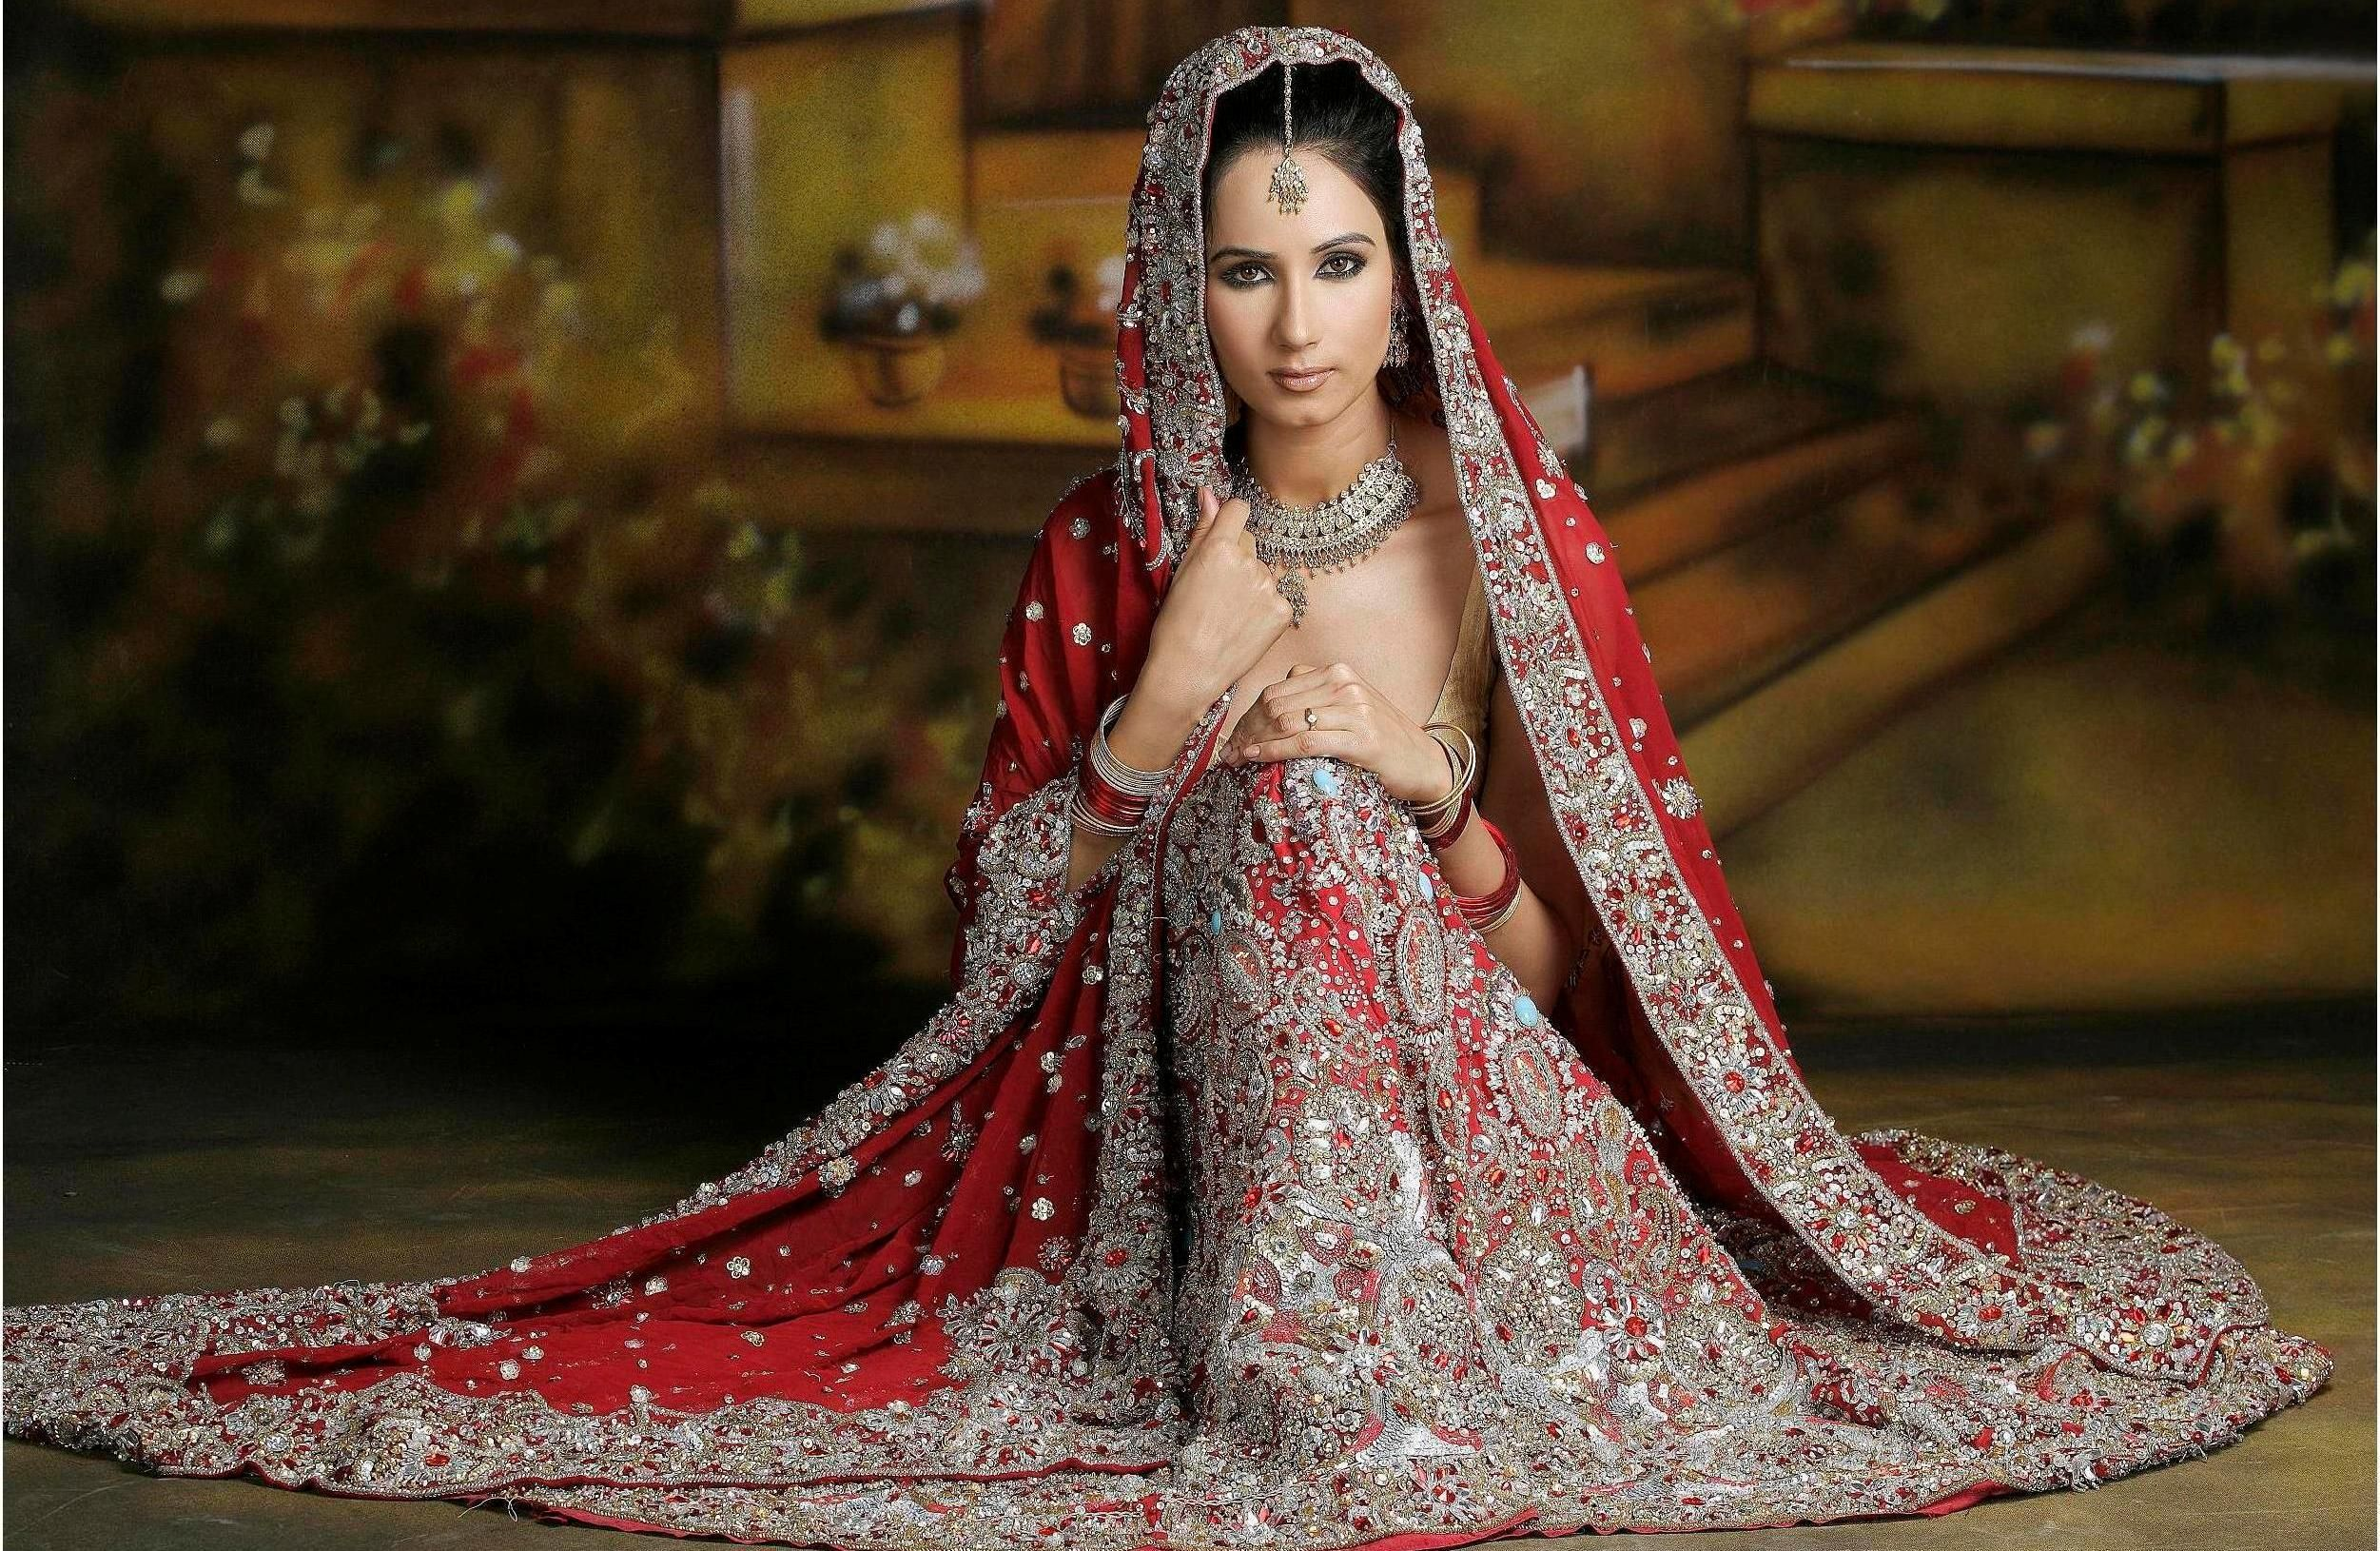 Indian bride in traditional indian wedding gown | World Ethnic ...